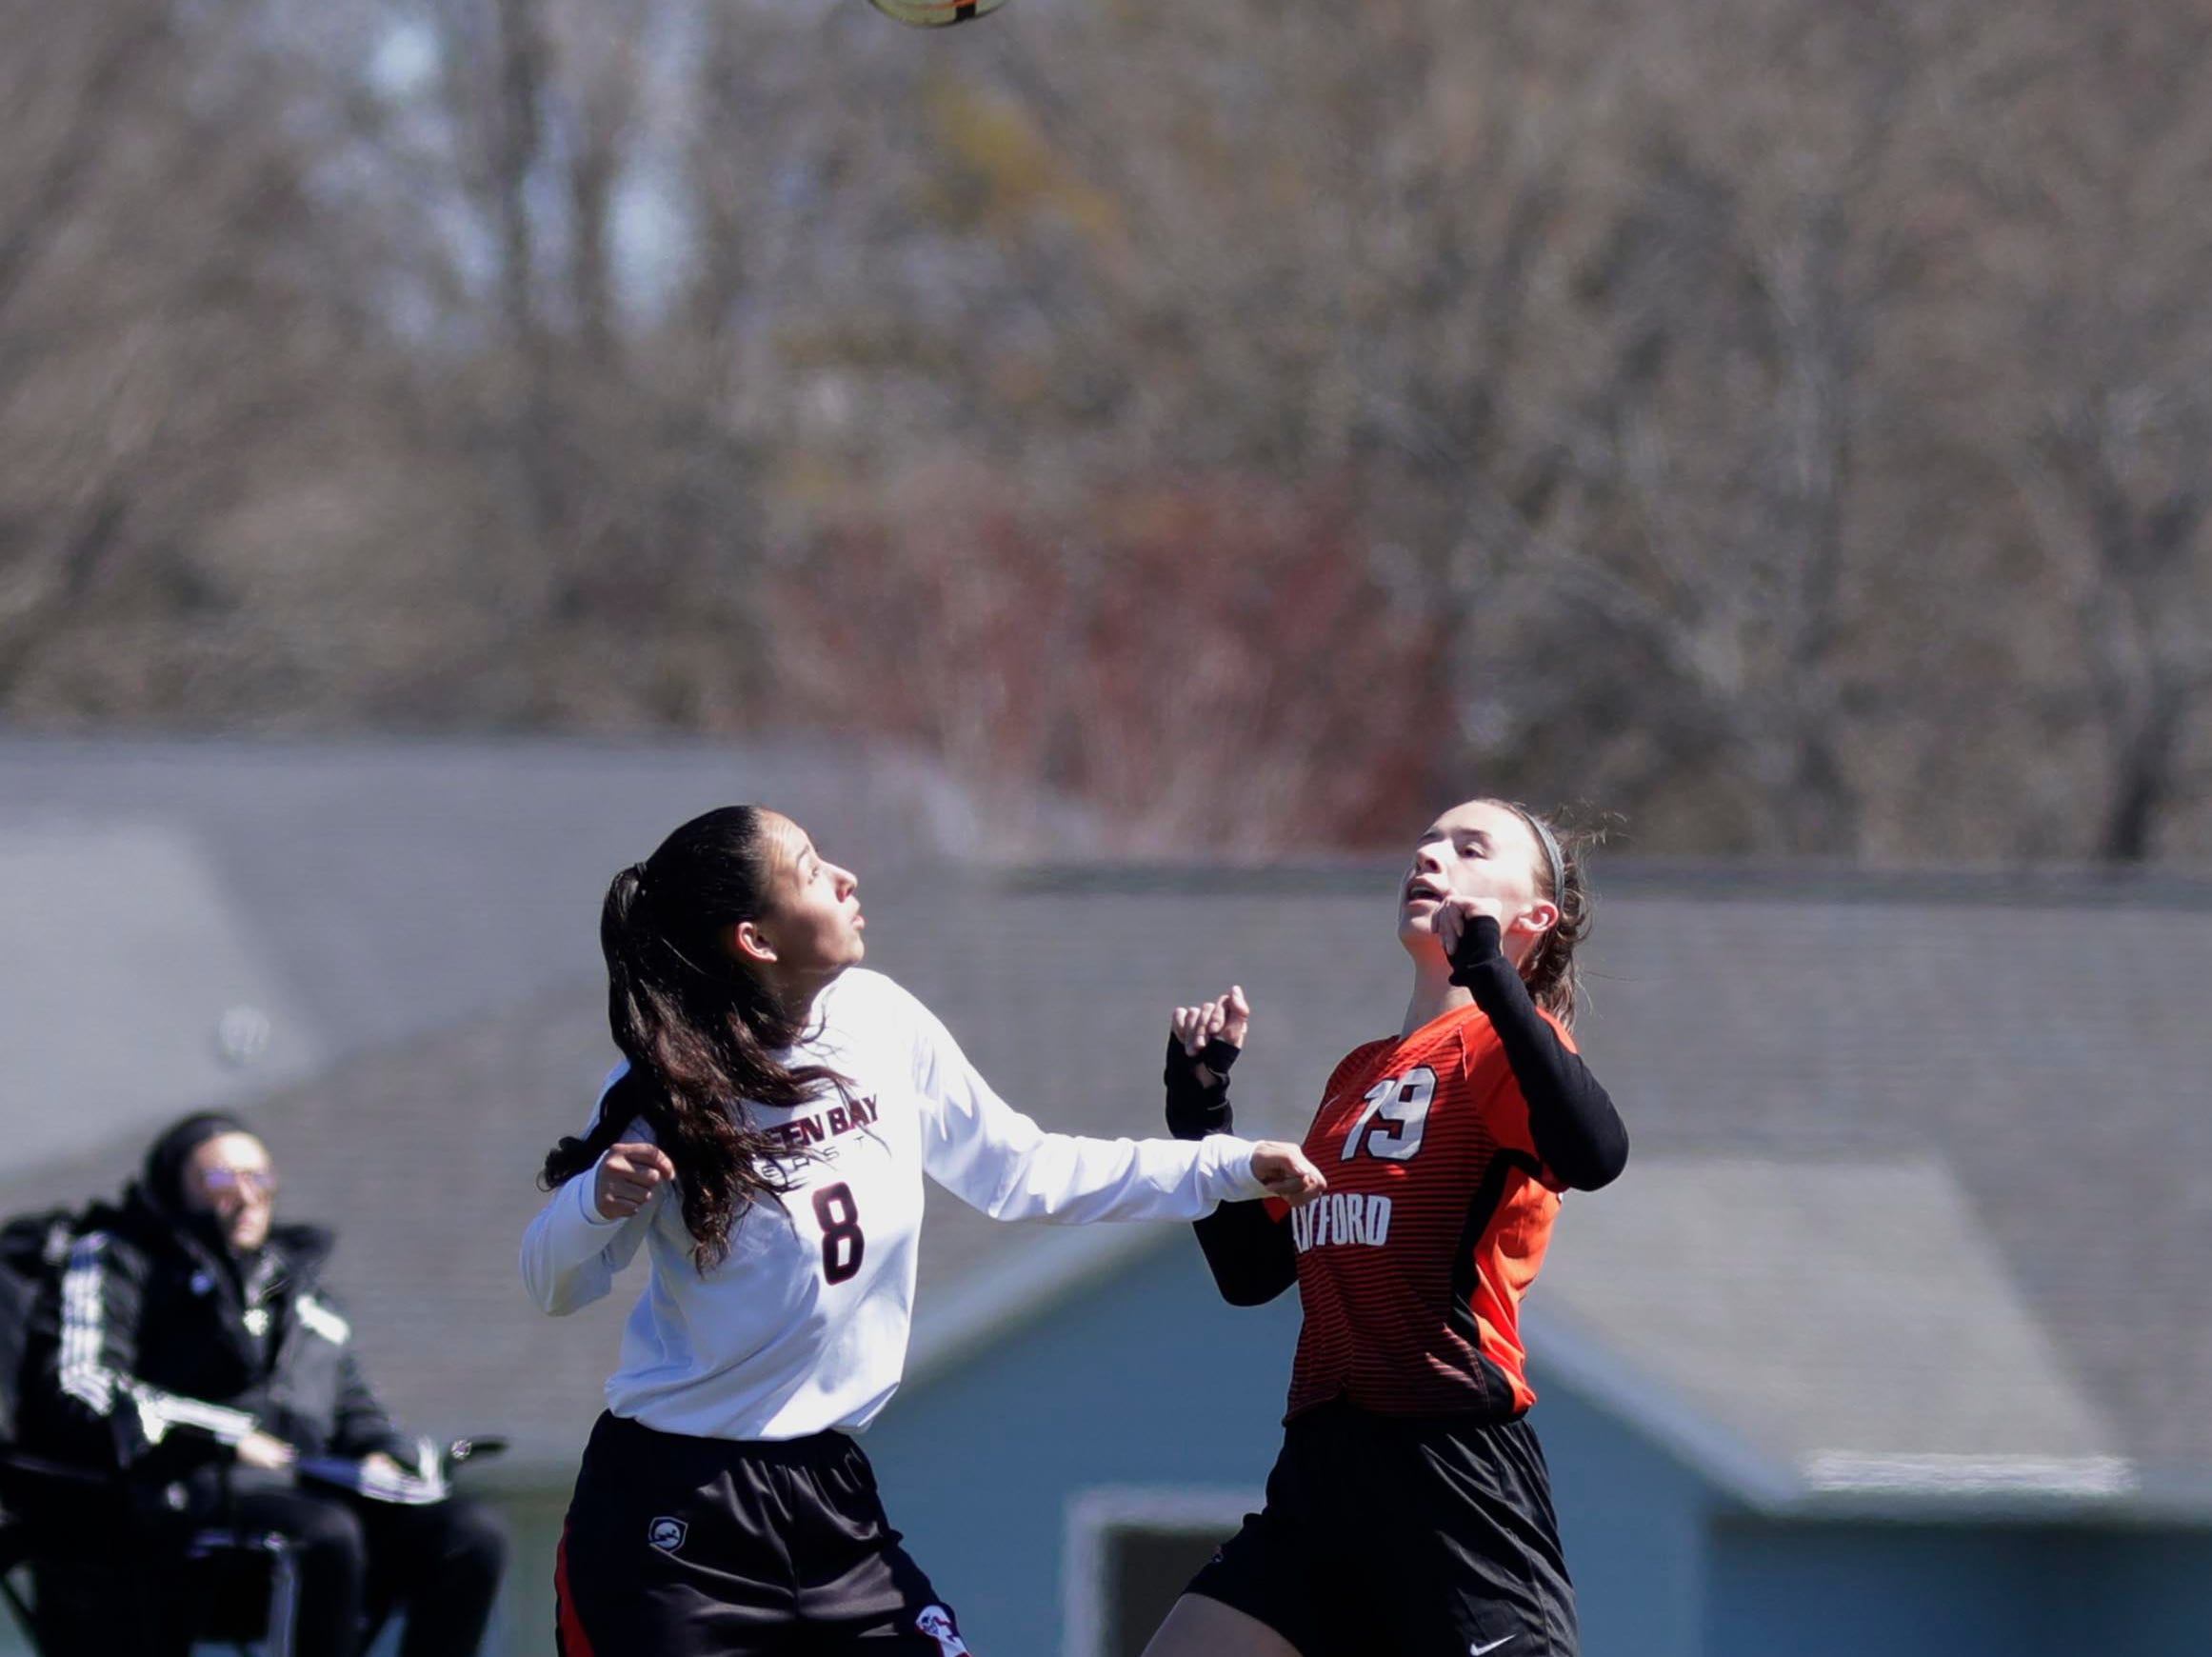 Green Bay East's Adriana Del Rio (8) and Hartford's Sydney Gifford (19) keep their eyes on the ball at the Sheboygan South Soccer tournament, Saturday, April 20, 2019, in Sheboygan, Wis.